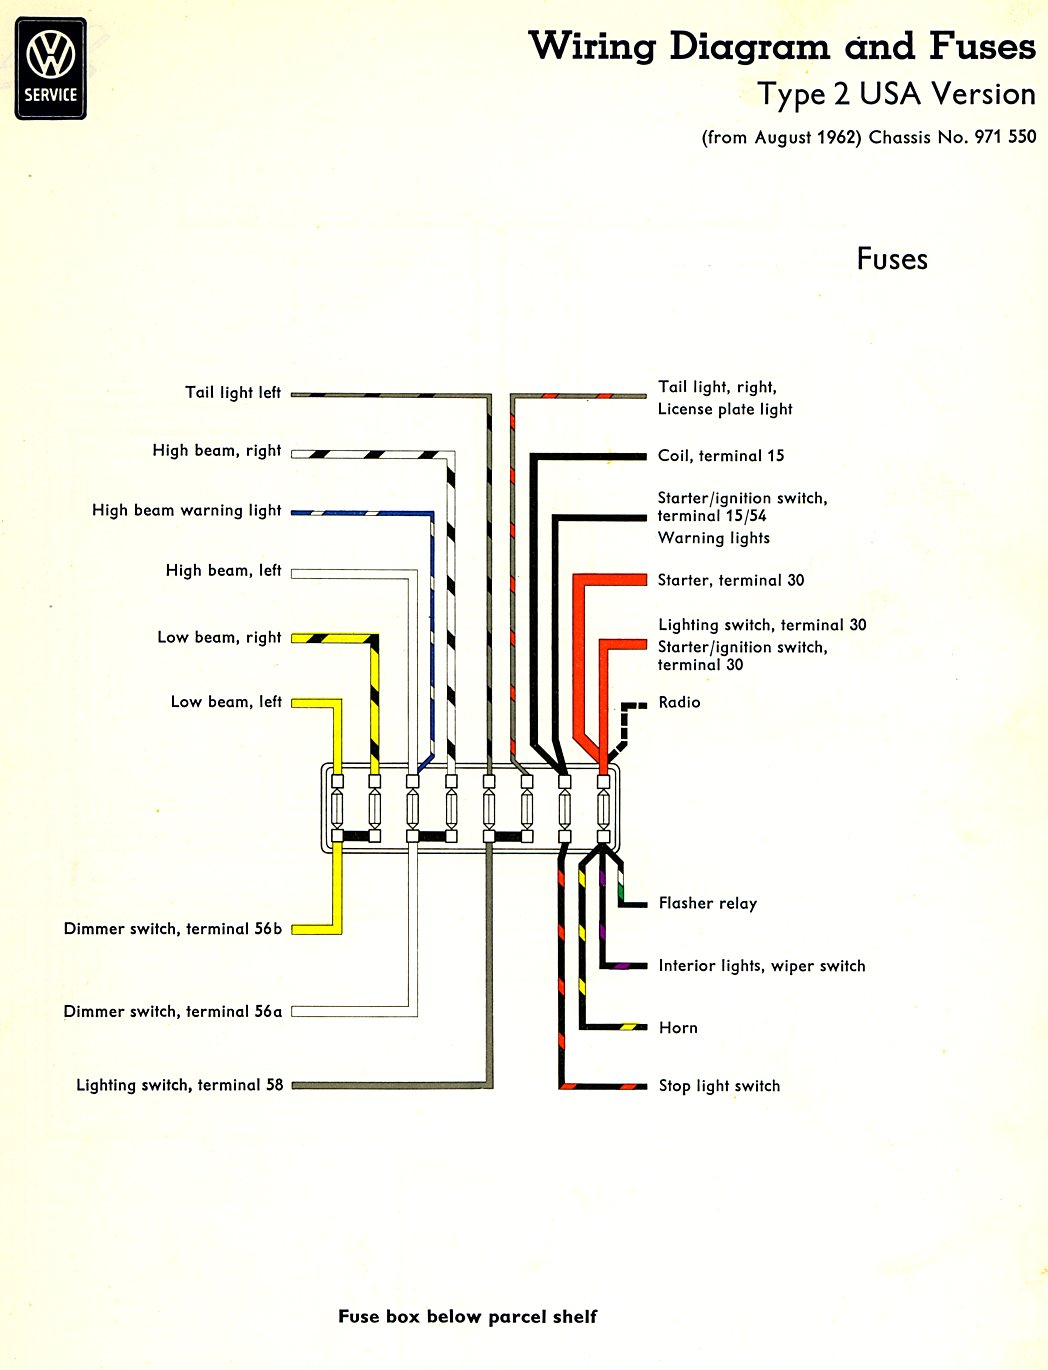 thesamba com type 2 wiring diagrams rh thesamba com 1972 vw super beetle  fuse box diagram